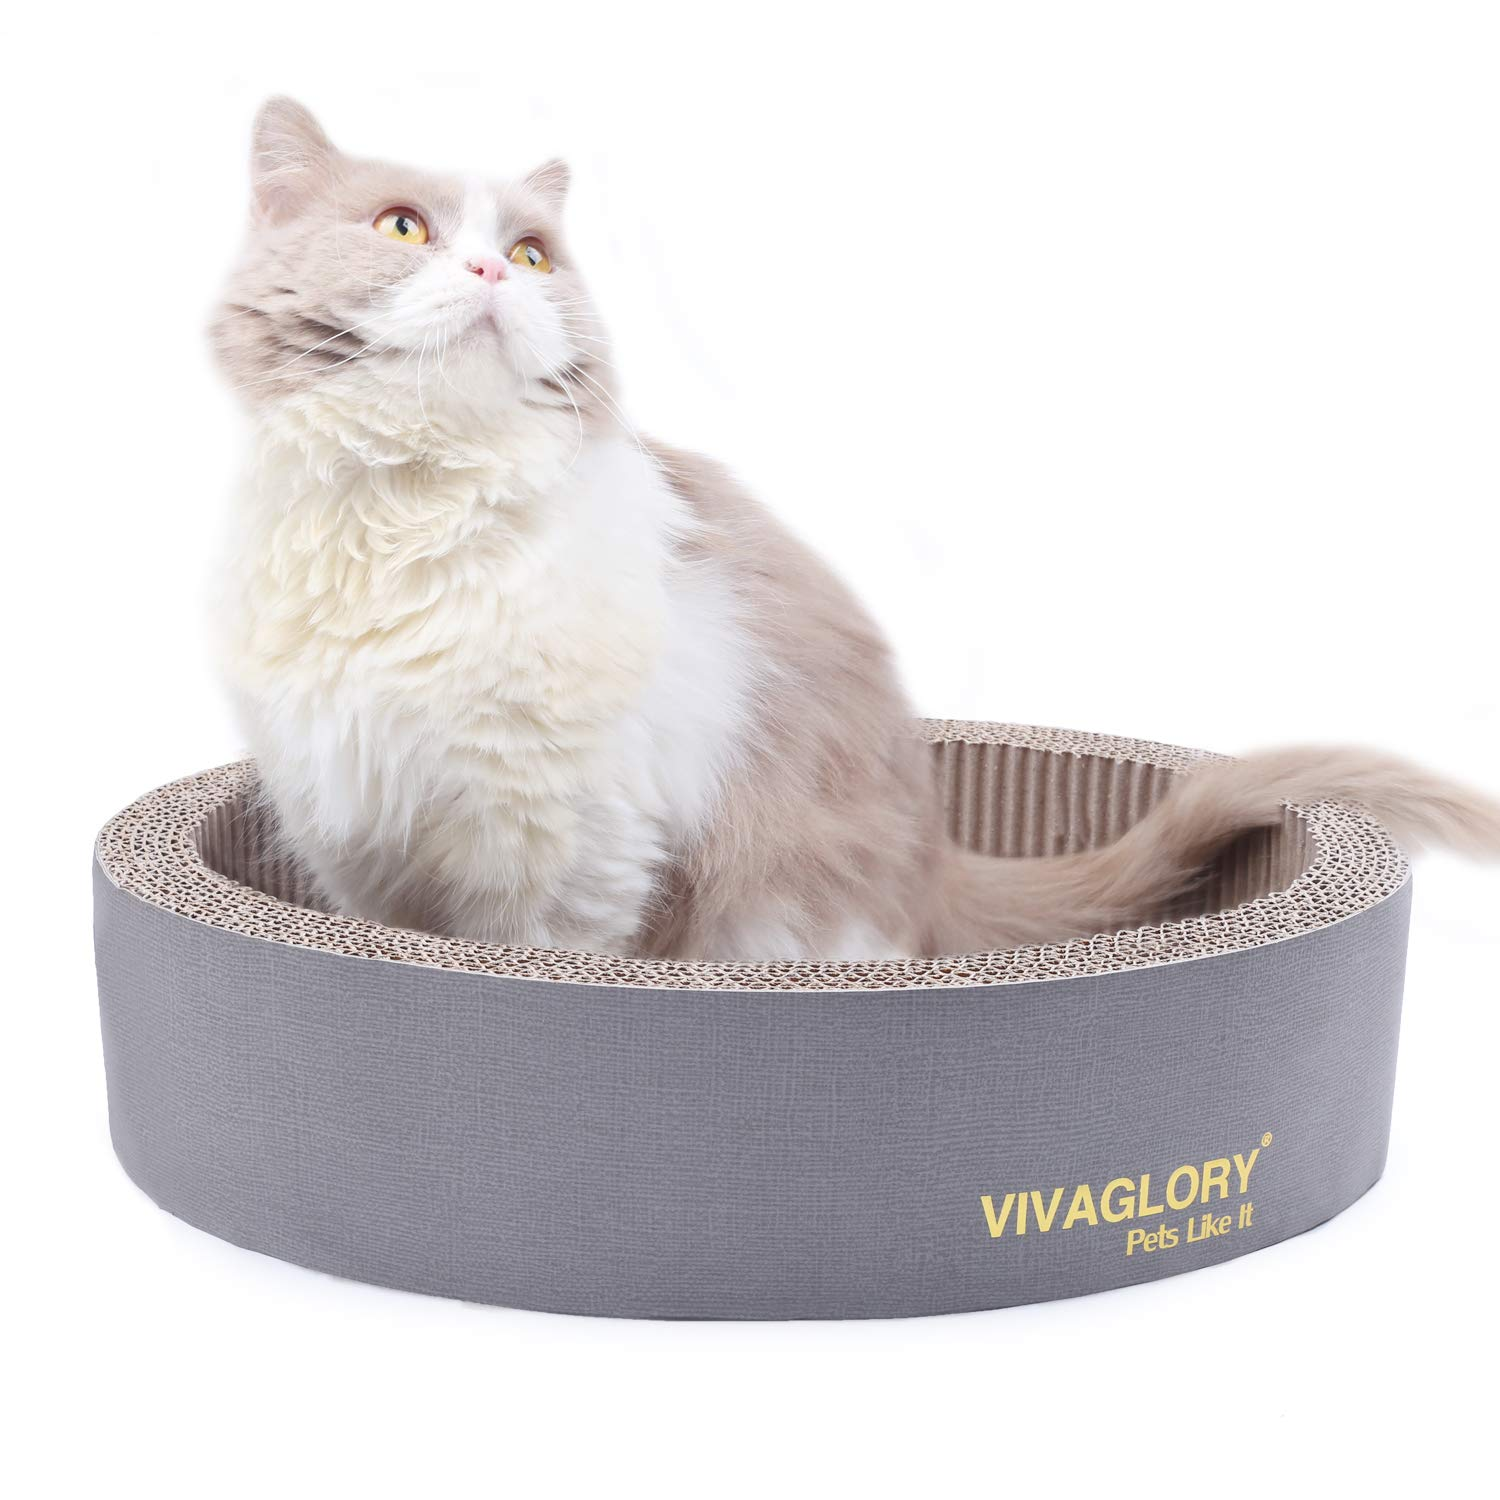 Vivaglory Oval Cat Scratcher Cardboard, Durable Cat Scratch Lounger Scratching Bed with Catnip, Grey by Vivaglory